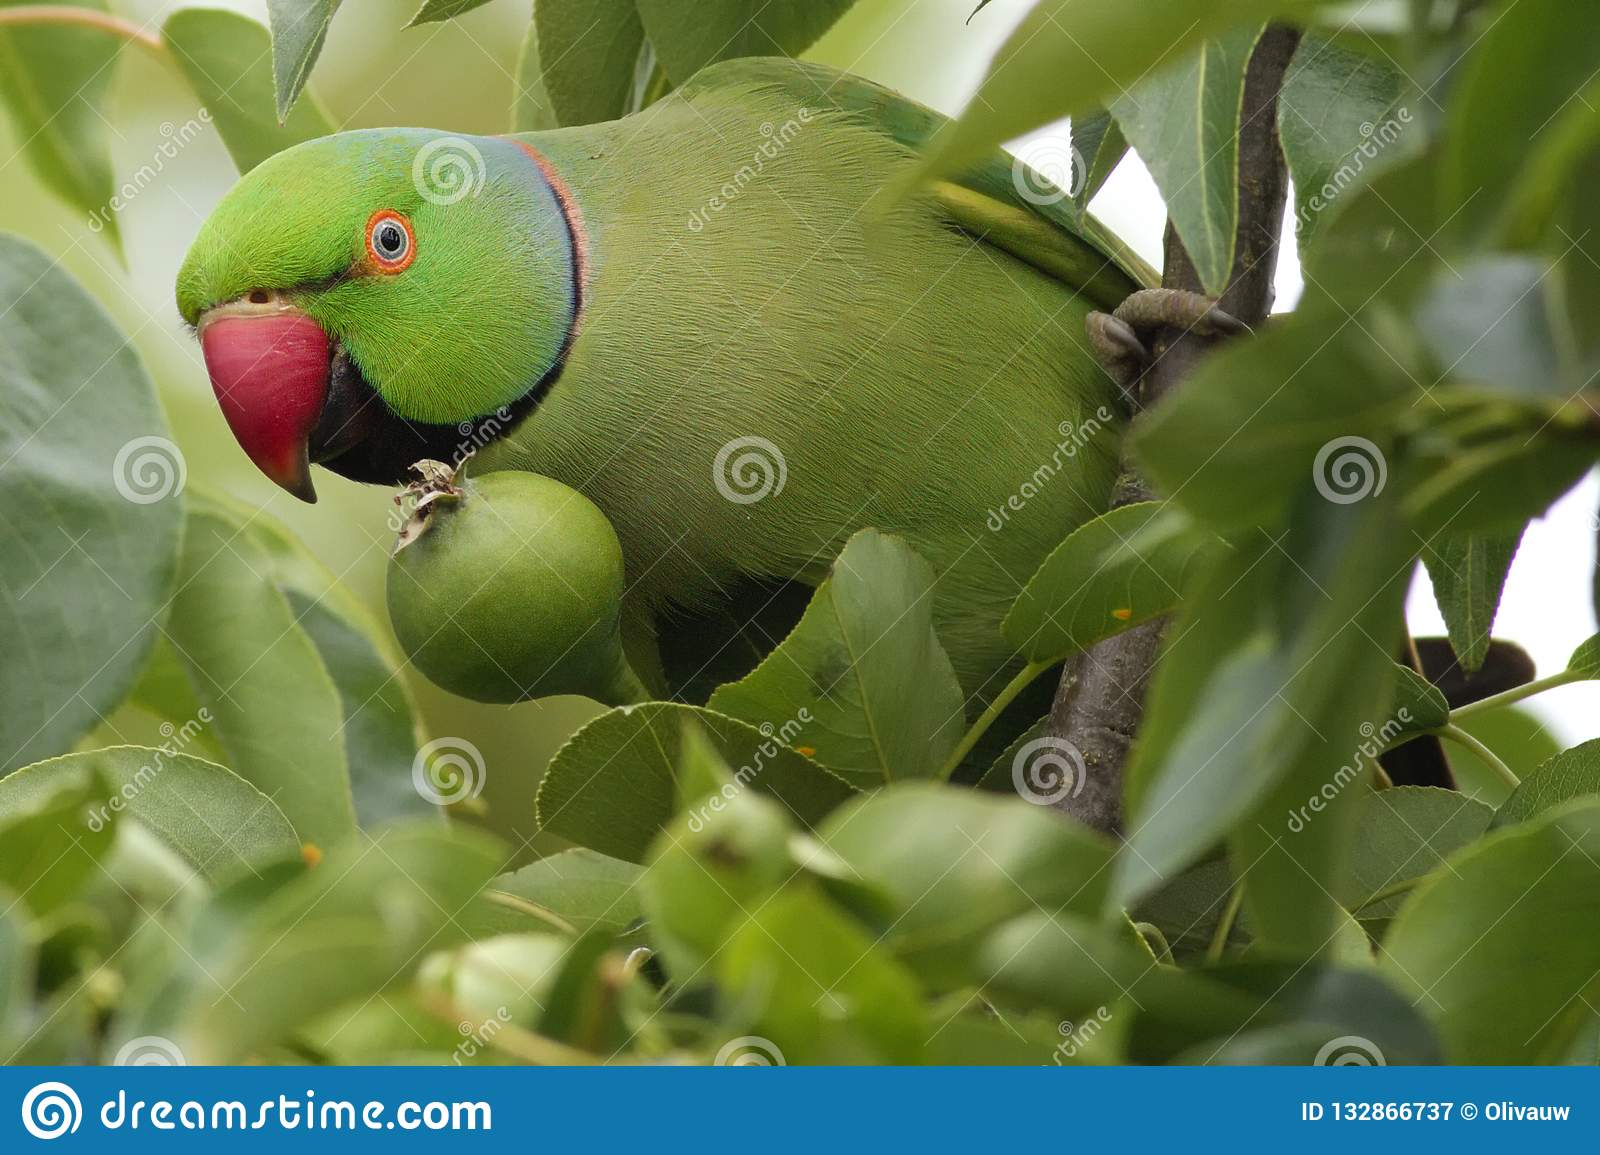 Rose-ringed parakeet in a pear tree